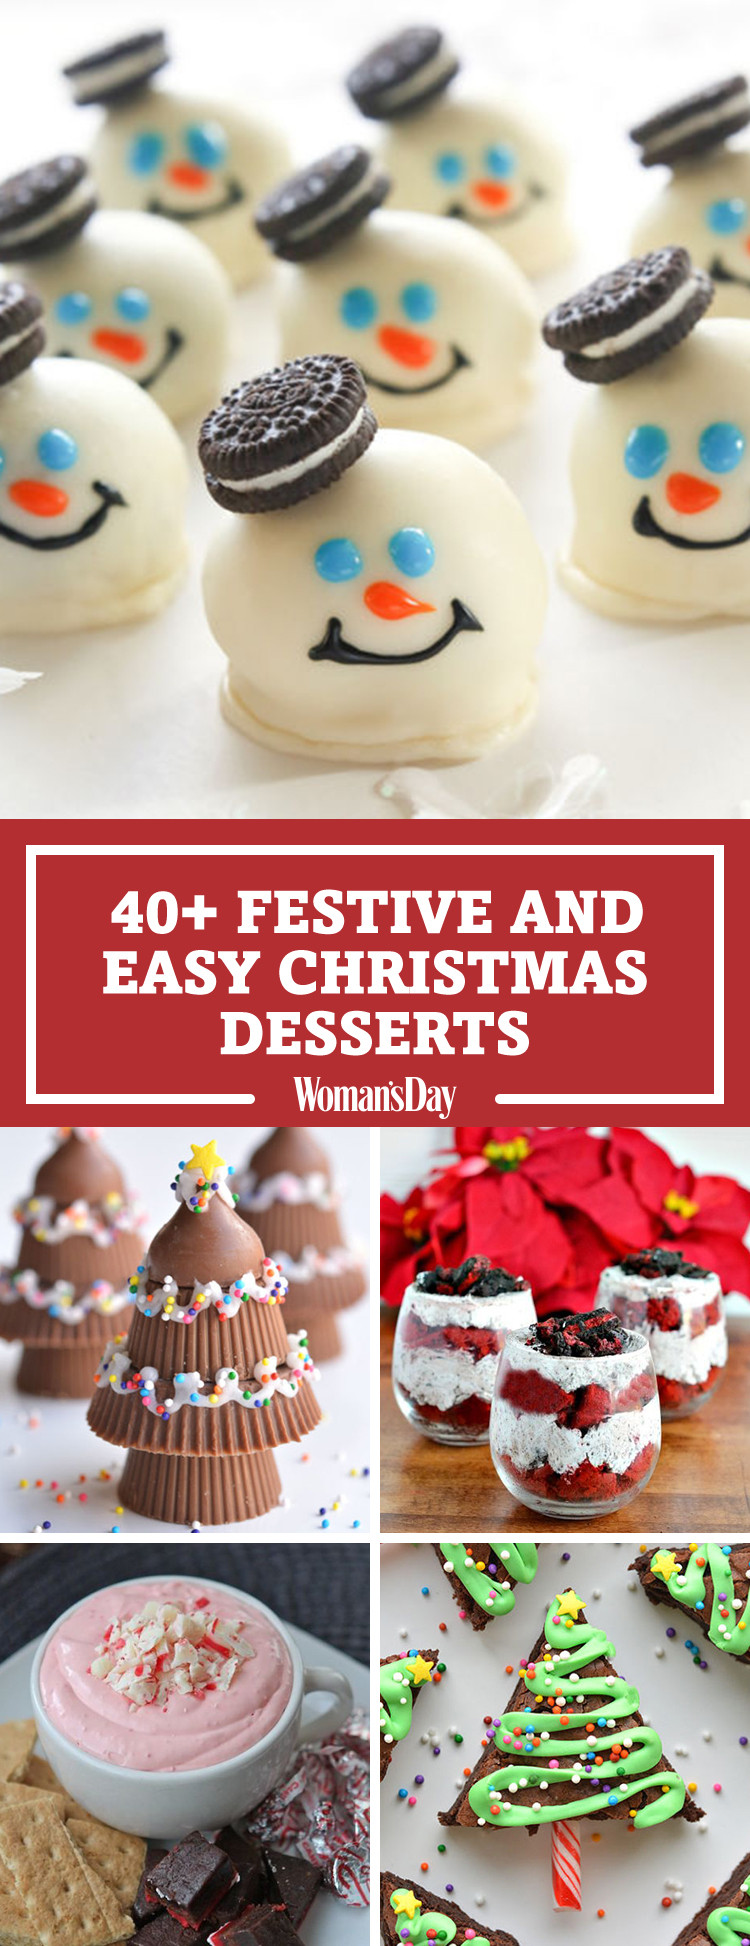 Easy Christmas Desserts  57 Easy Christmas Dessert Recipes Best Ideas for Fun